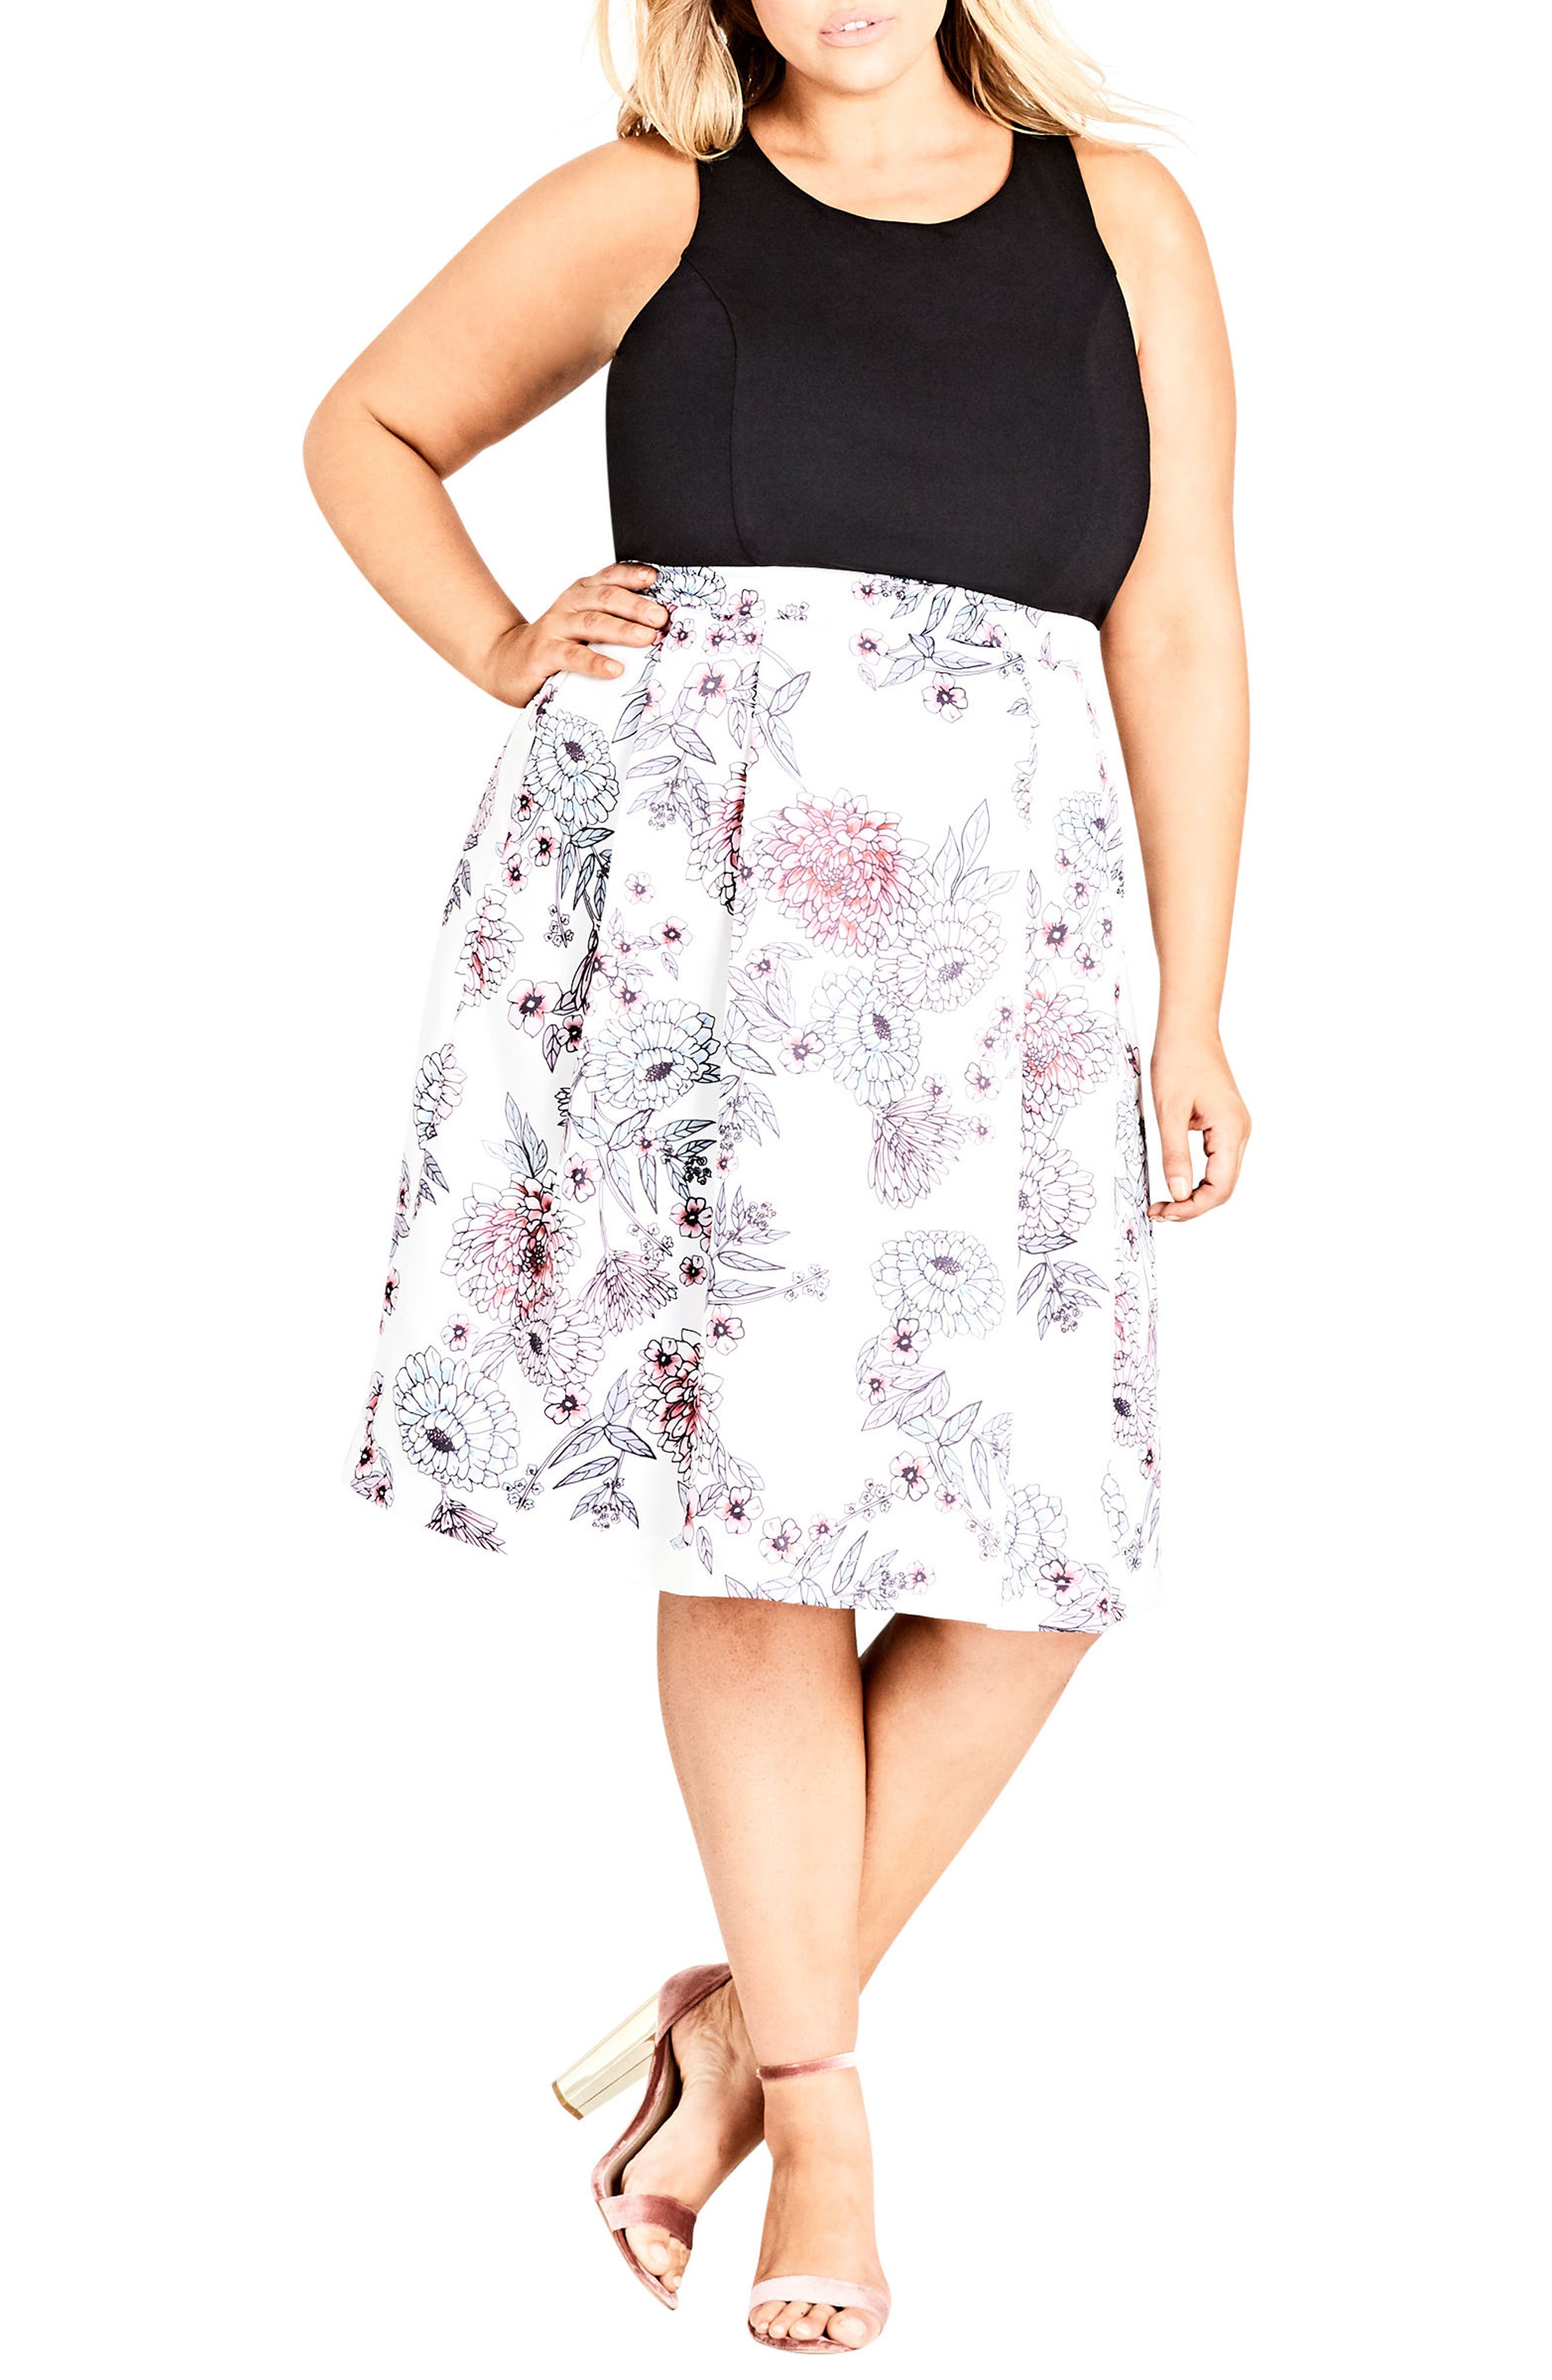 Main Image - City Chic Spring Affair Fit & Flare Dress (Plus Size)